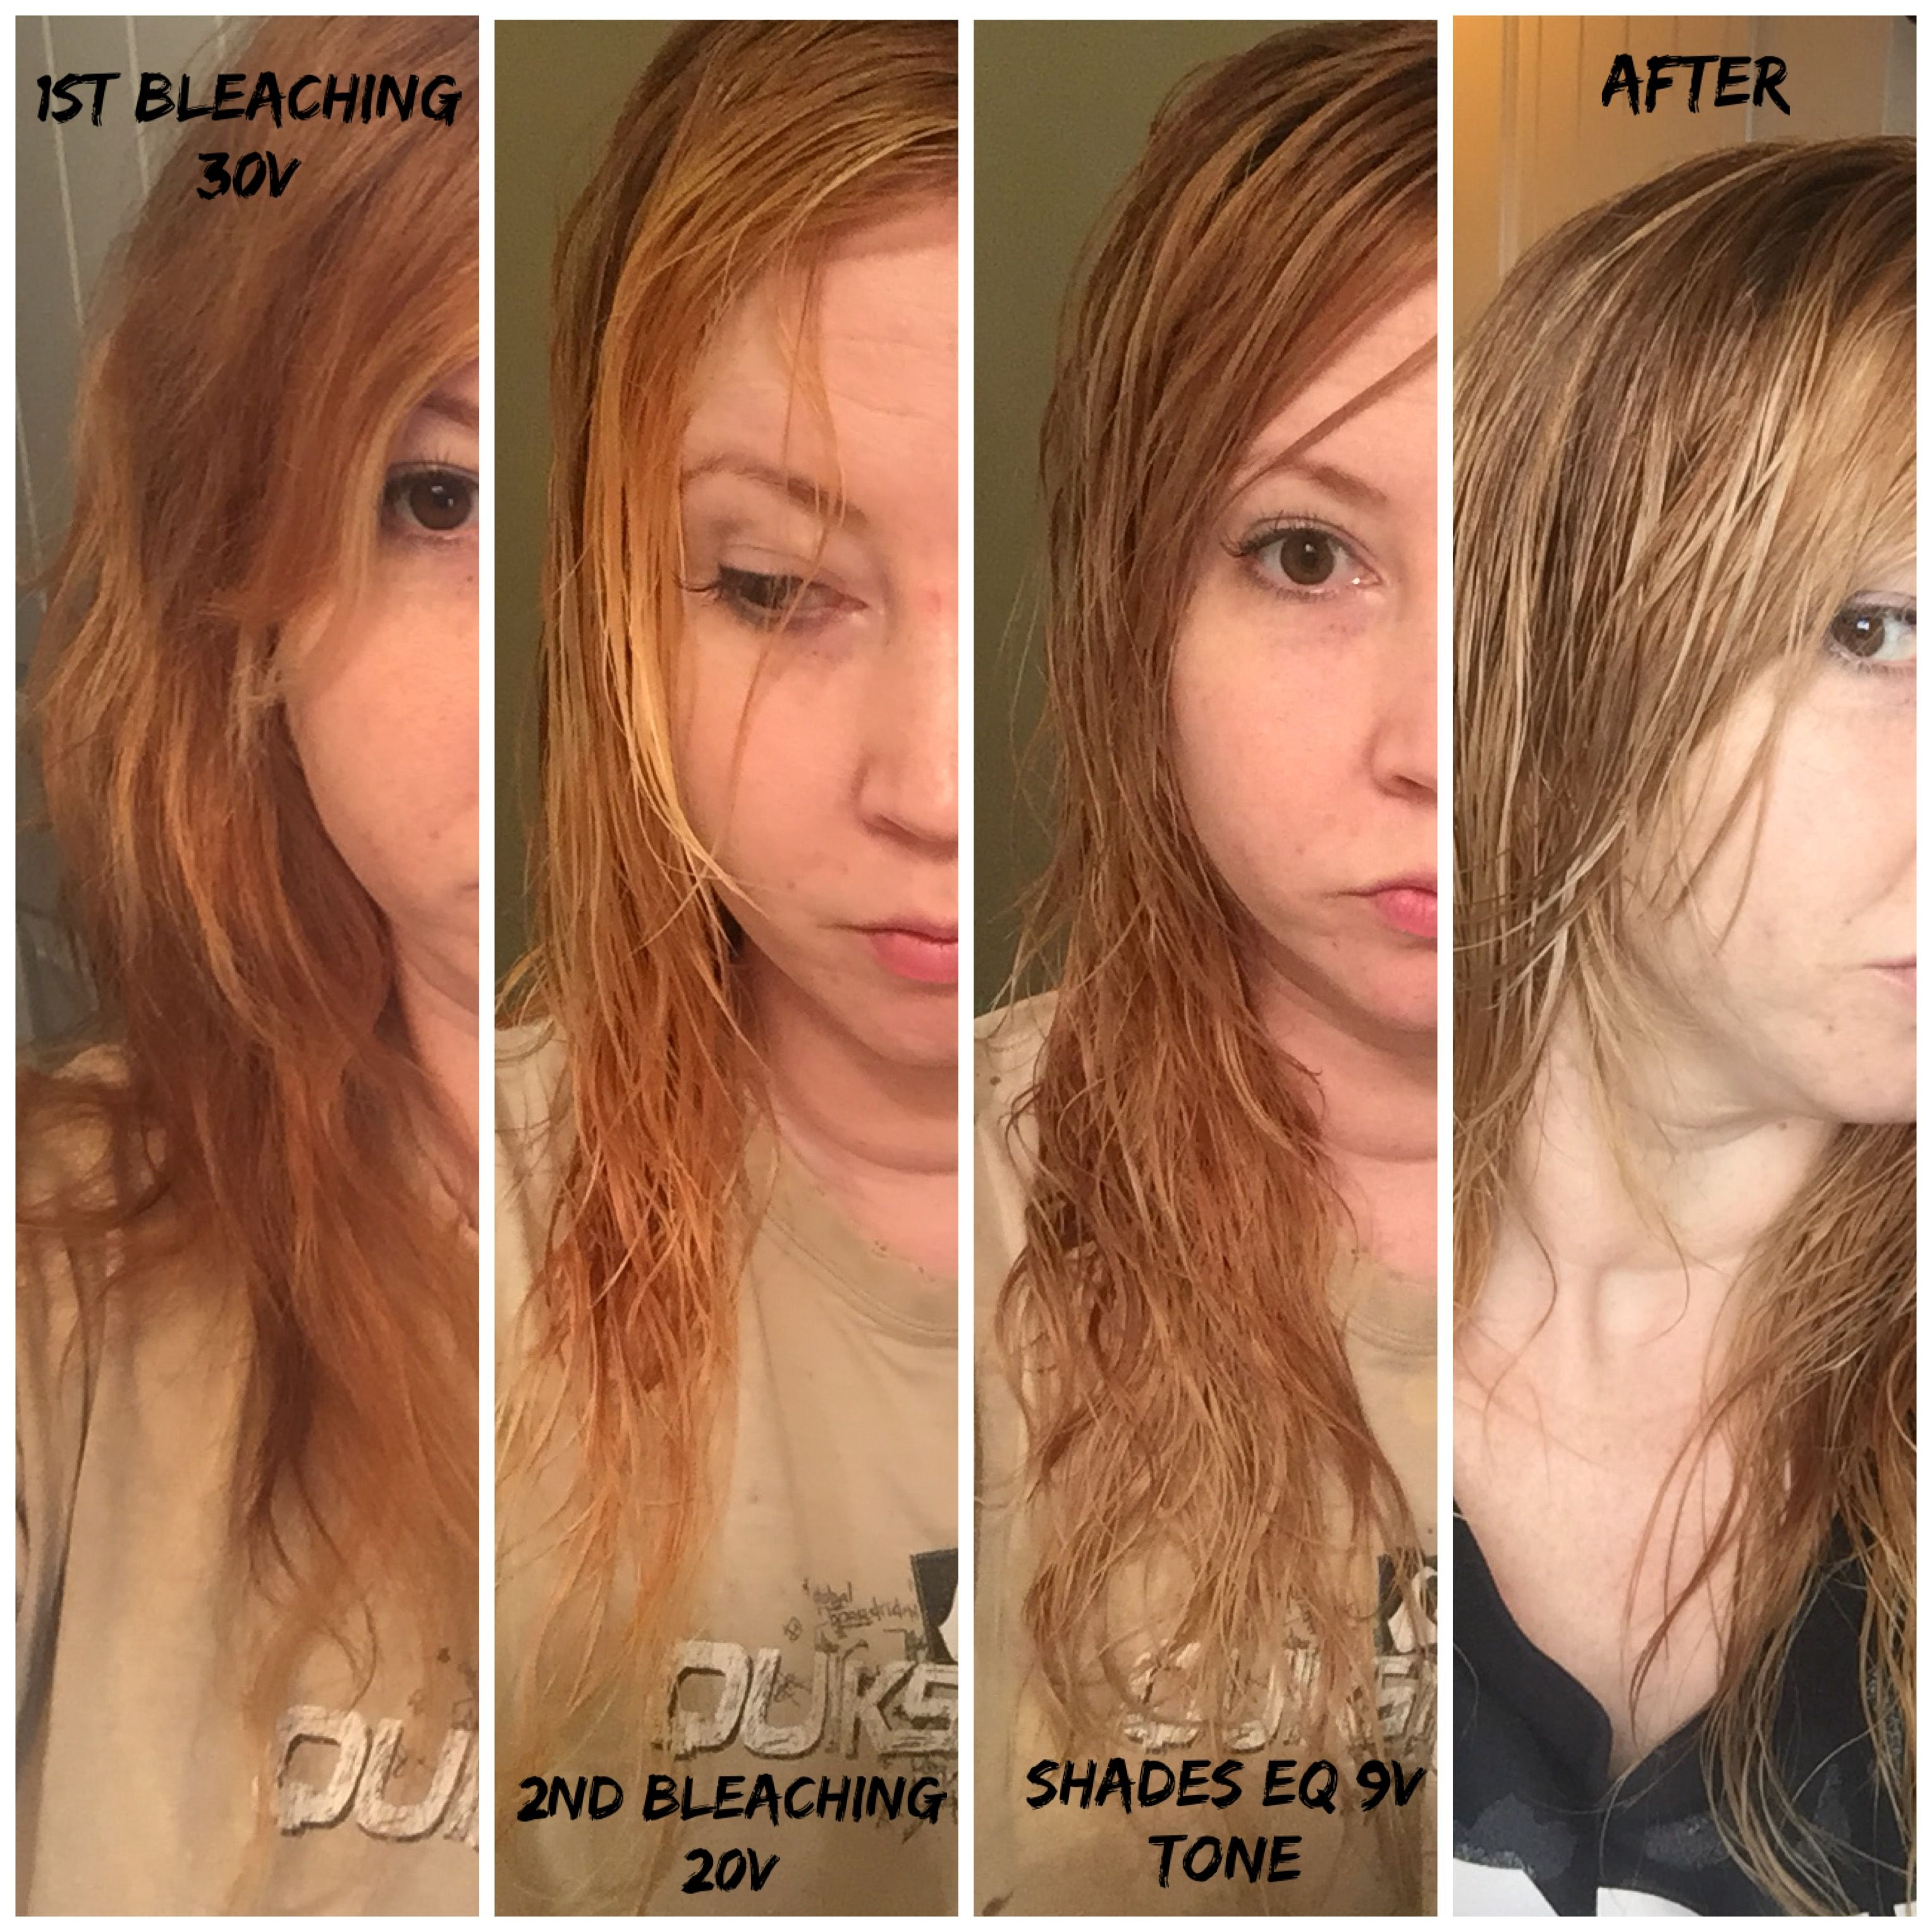 Oh The Process I Always Pull Very Orange Bleached Then Toned With Shades Eq 9v Then Used Wella Toner T14 Worked Better Wella Toner Bleach Hair Styles